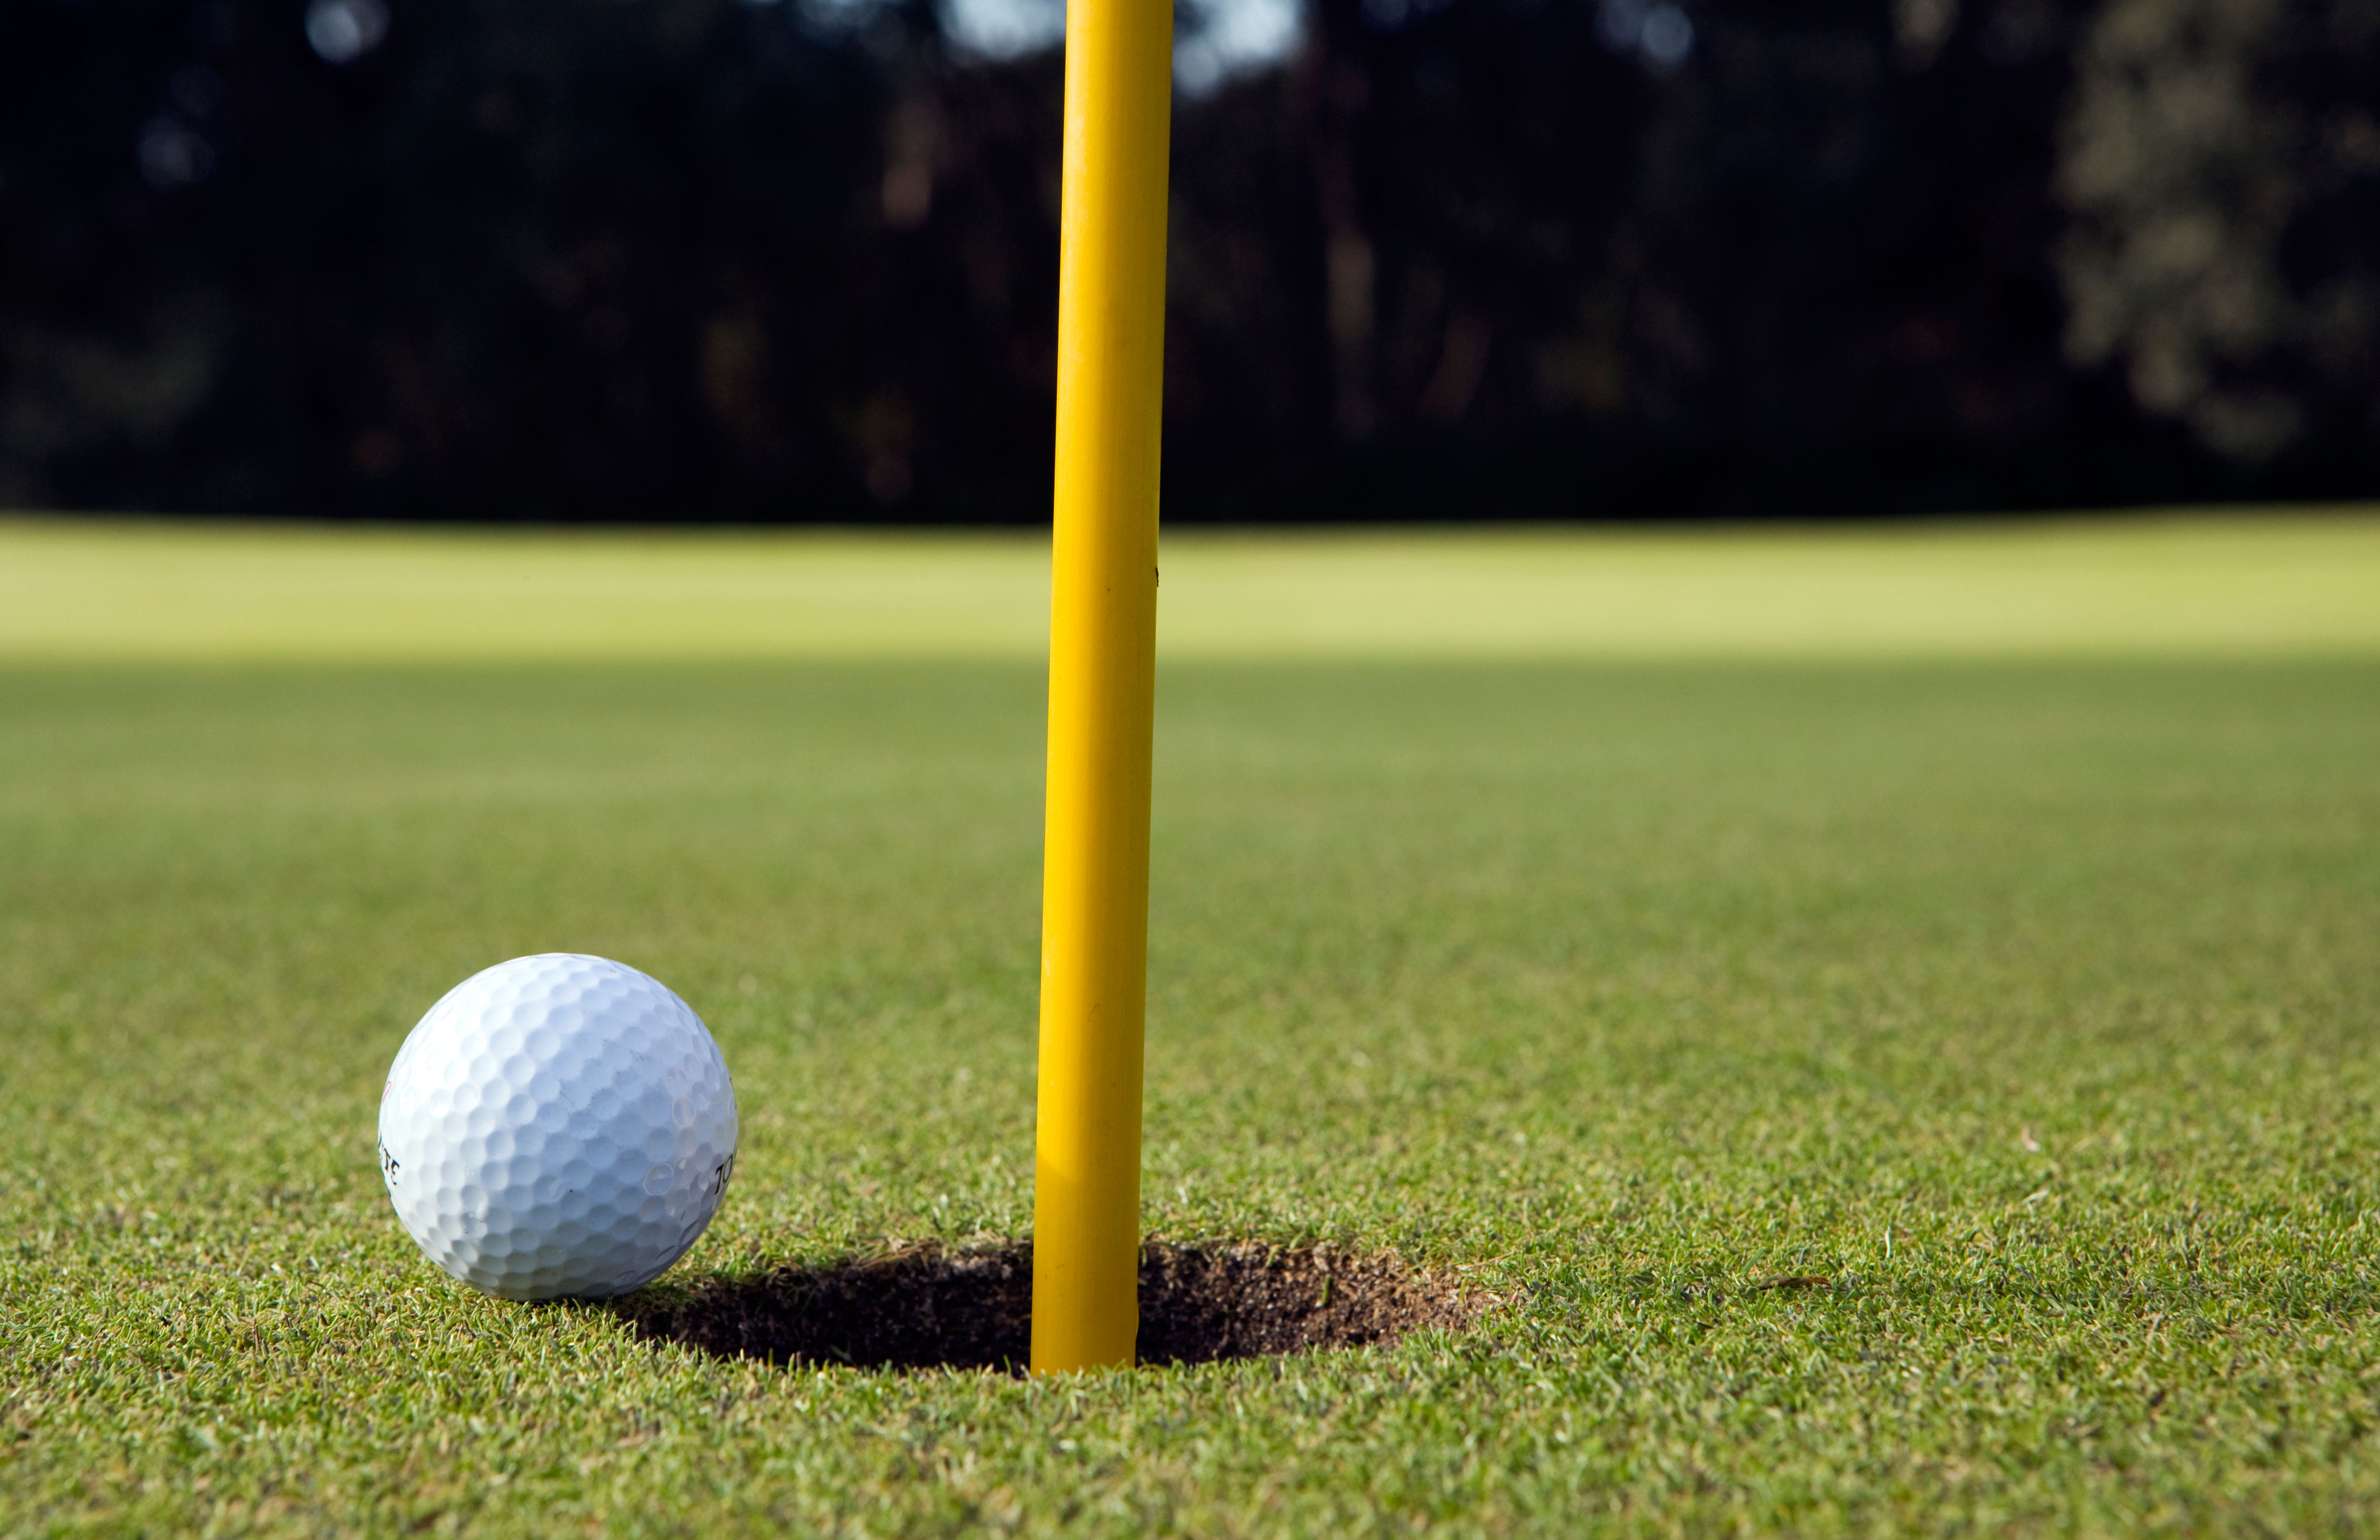 Before joining a golf club, check if you are covered for medical conditions